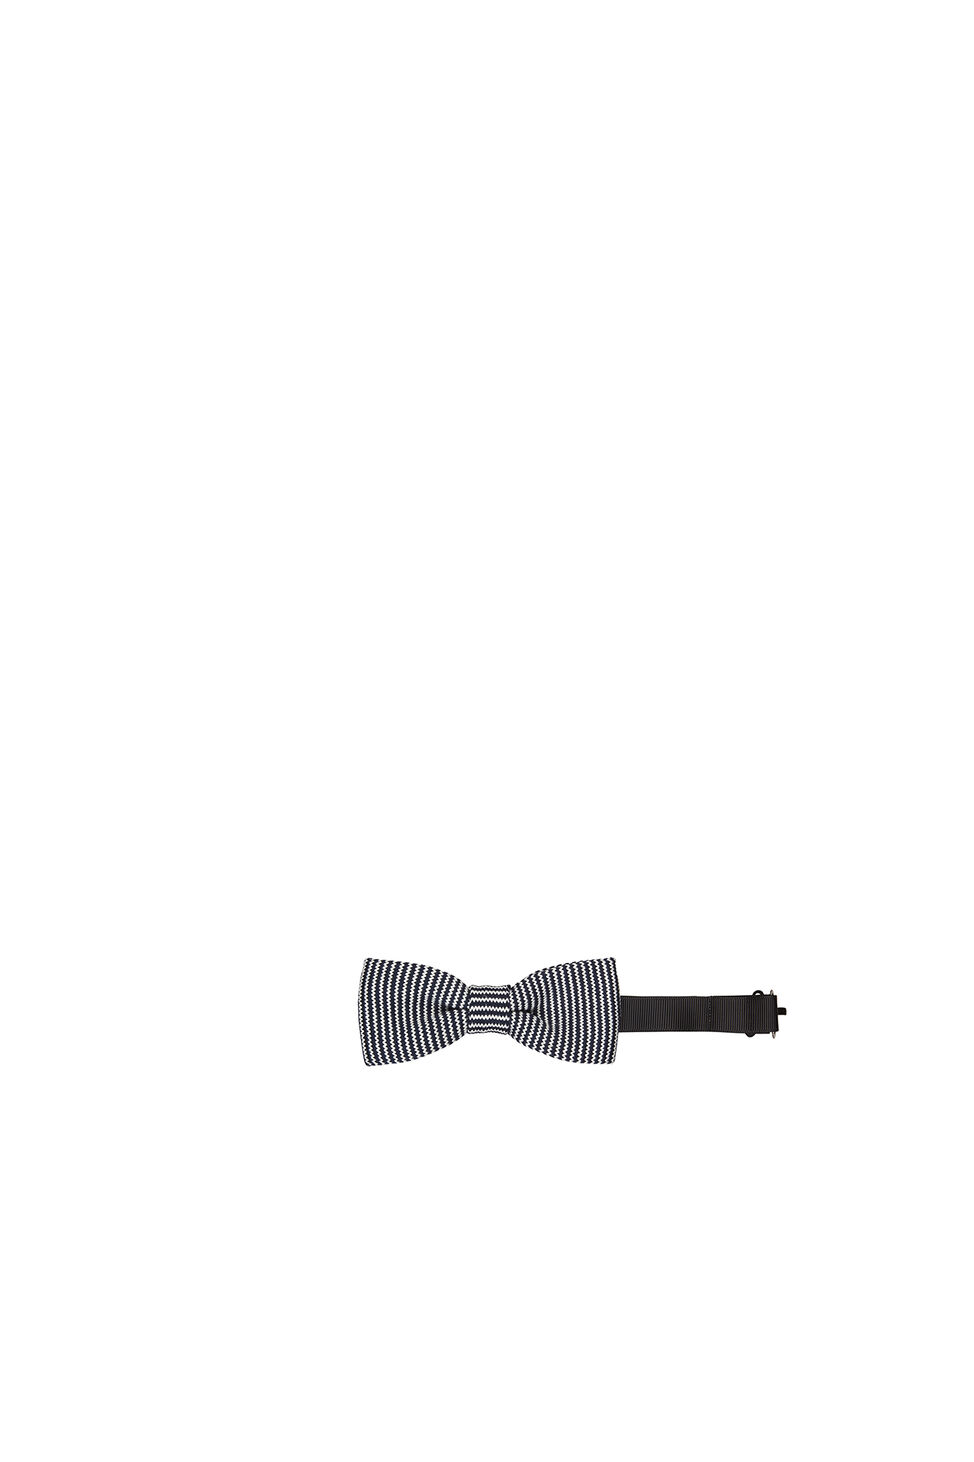 Lawrence bow tie 7507, T. ECLIPSE ST